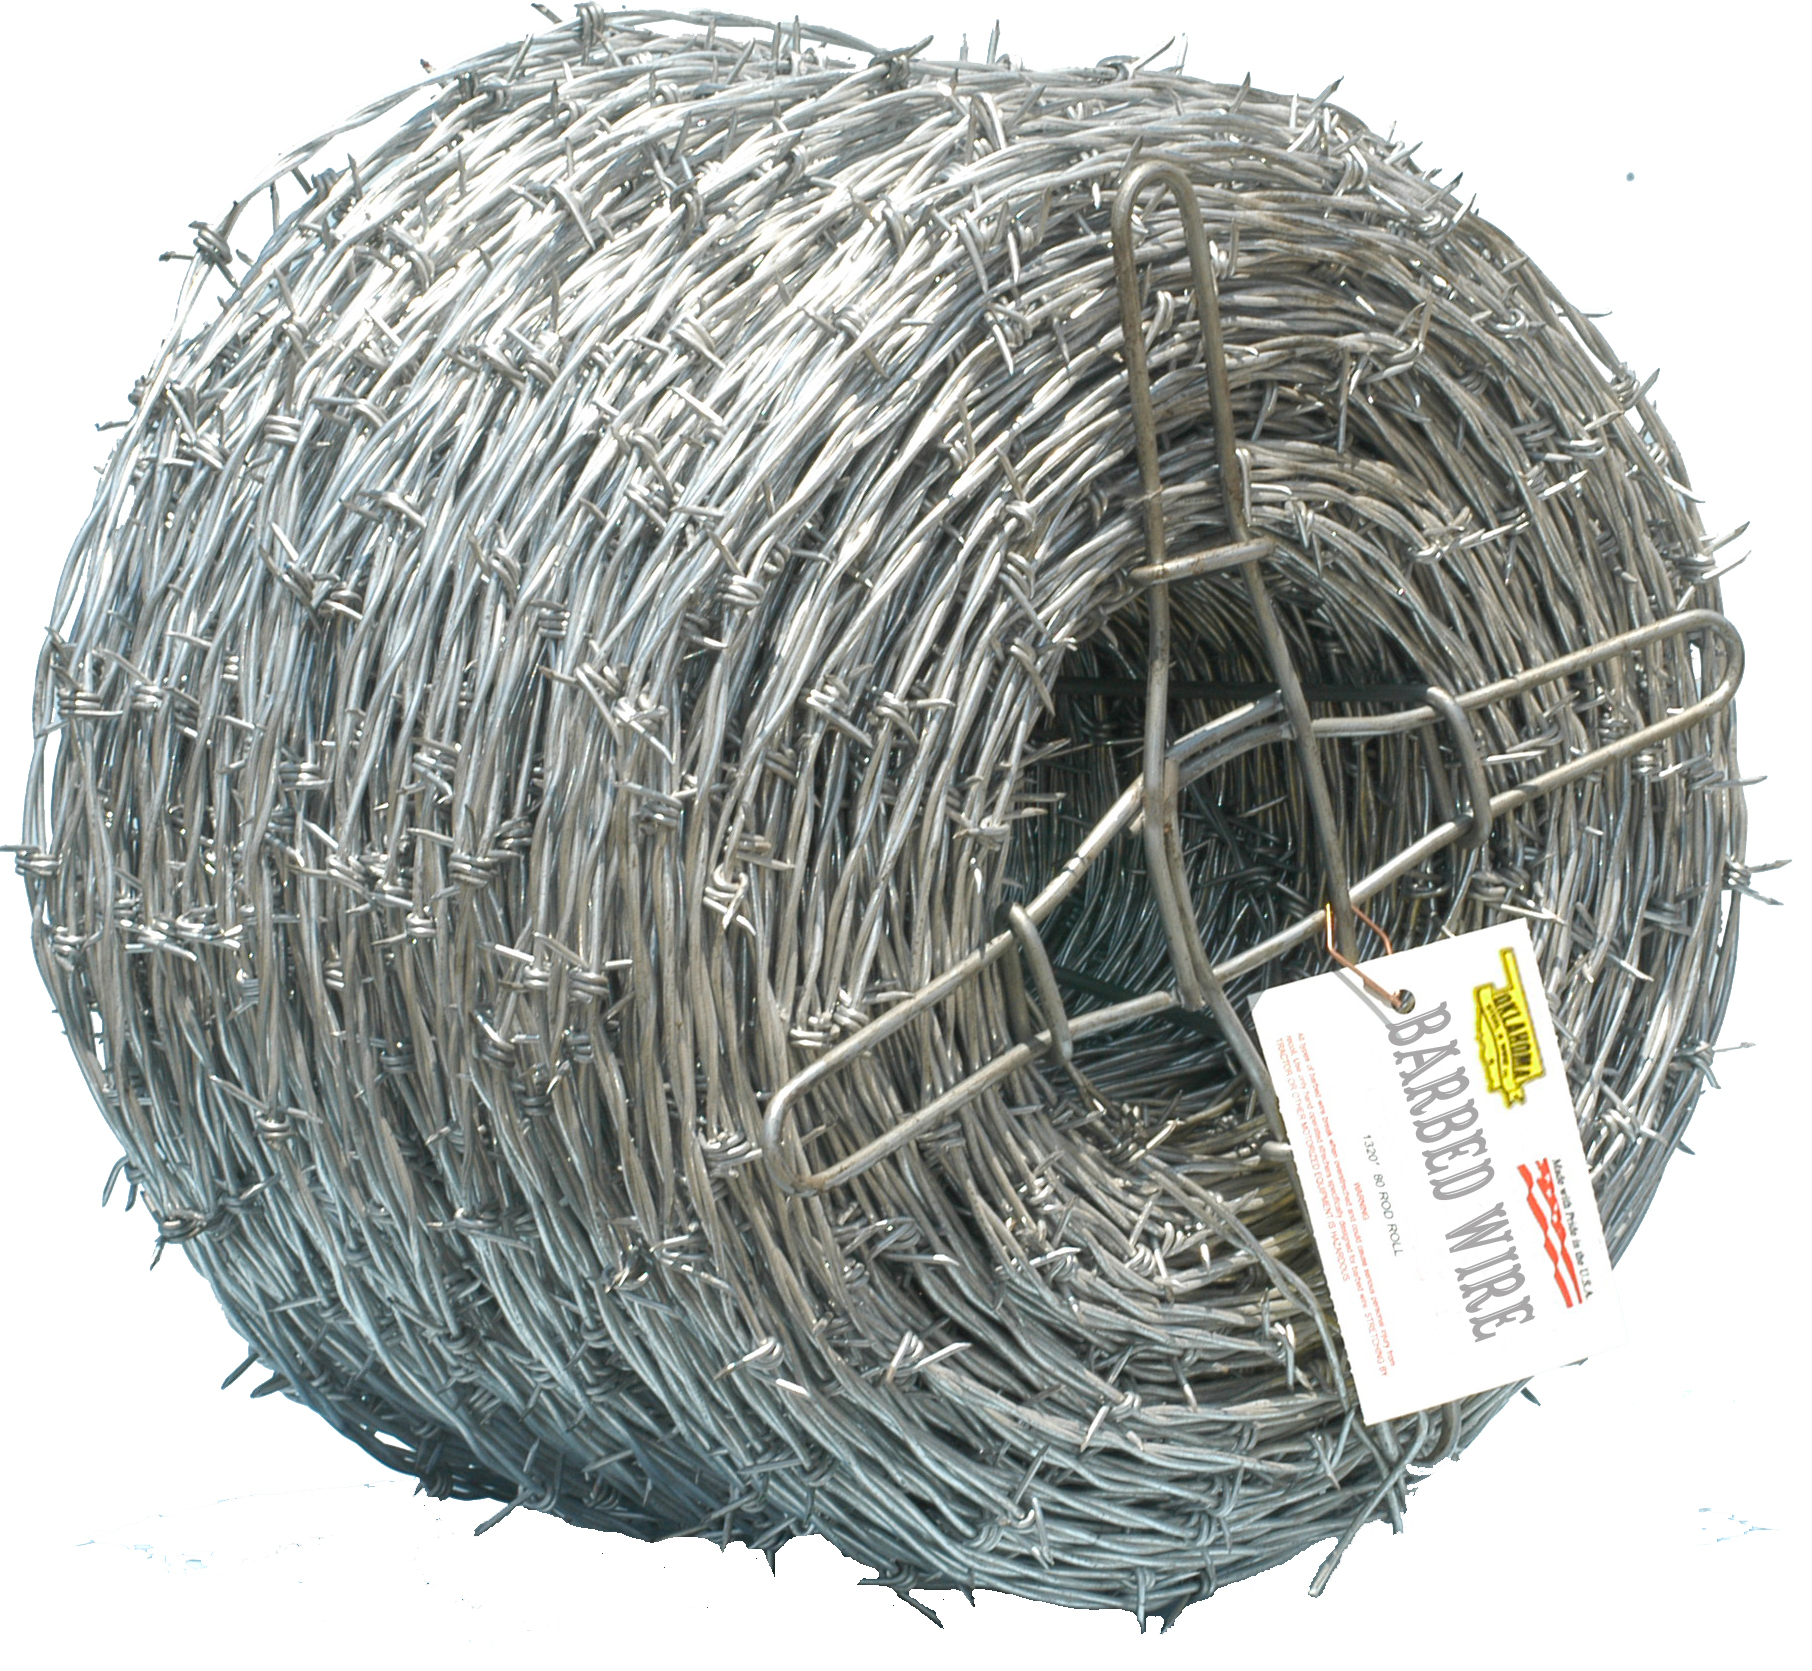 12.5 Gauge Select Barb Wire